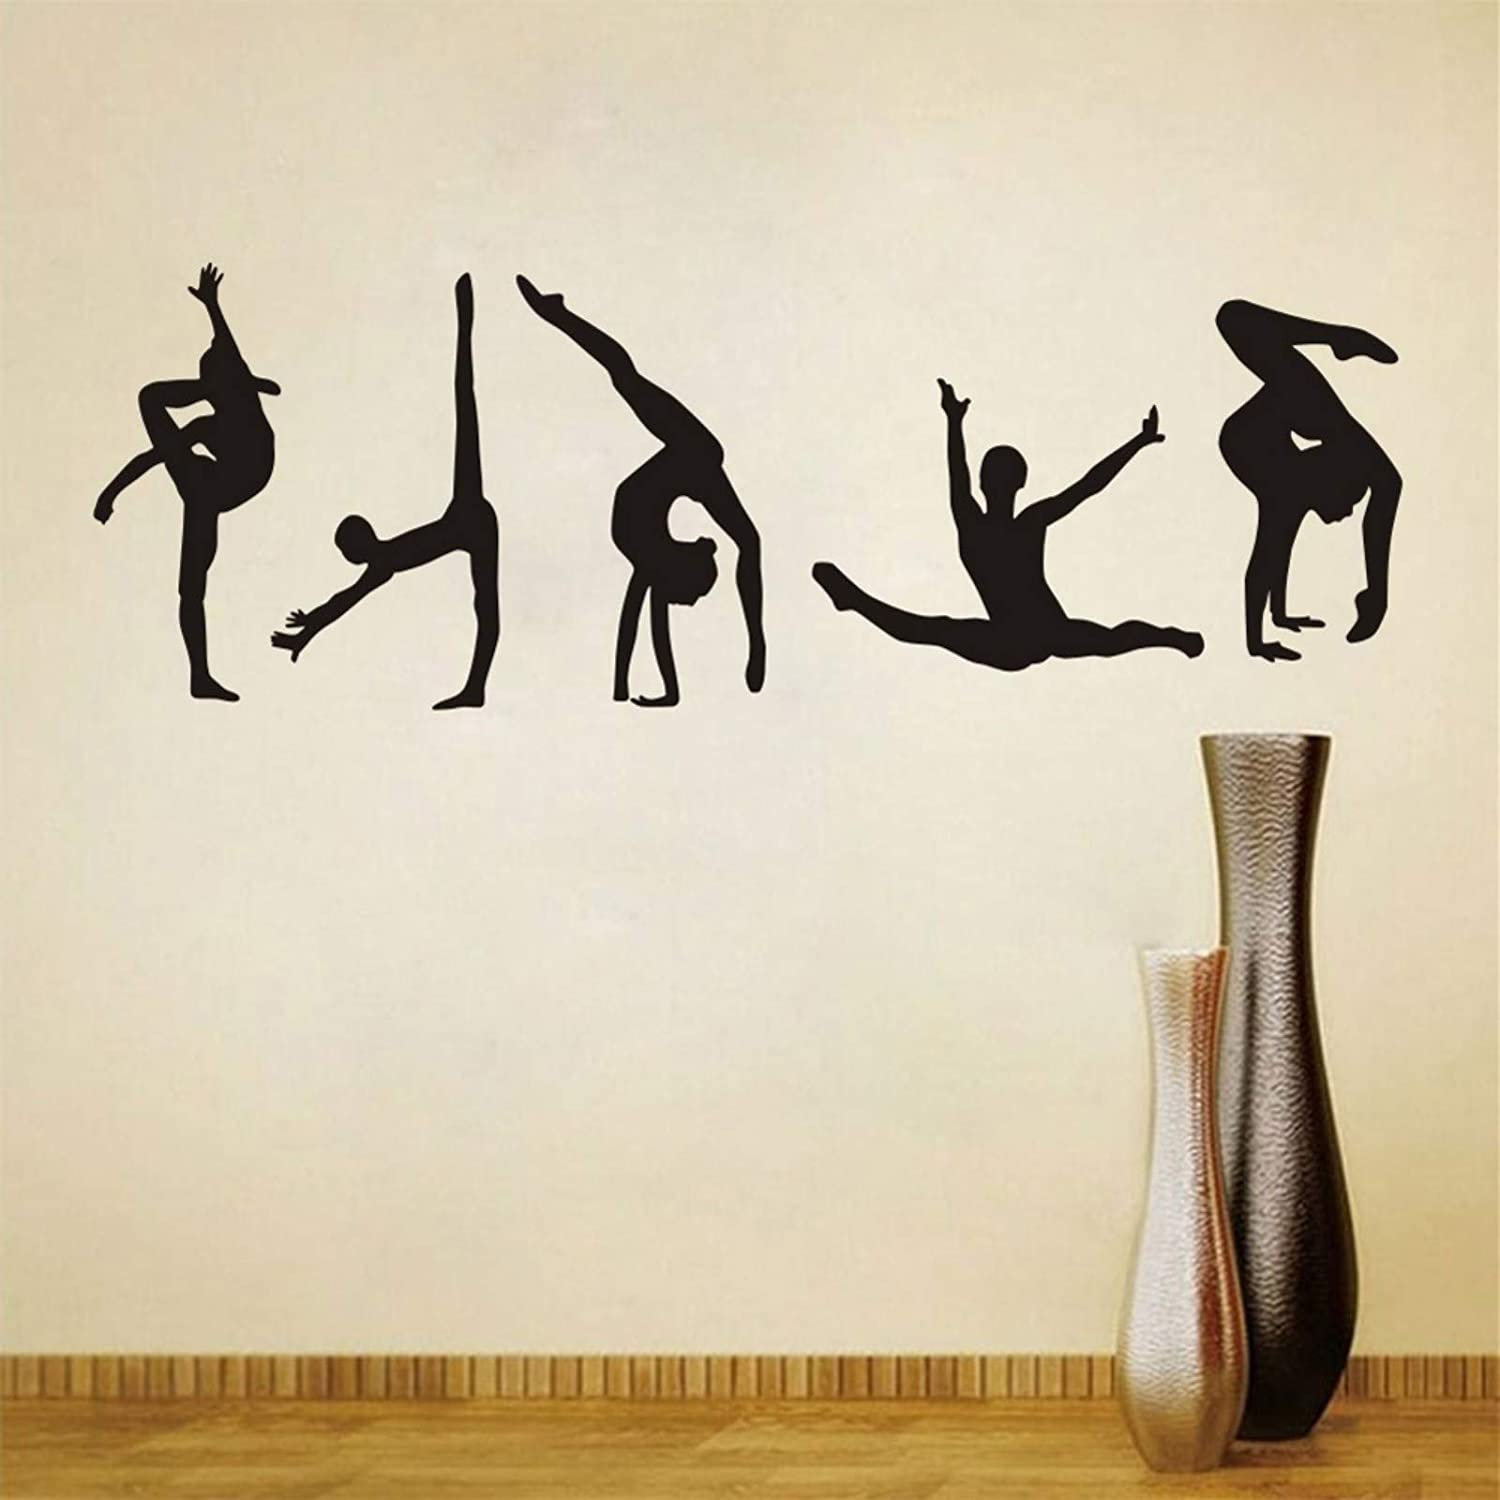 Set of 5 Pieces)Dance Gym Decor Home Decoration for Living Room Bed Room Girls Room Maydahui Dancer Wall Decal Yoga Sport Art Wall Sticker